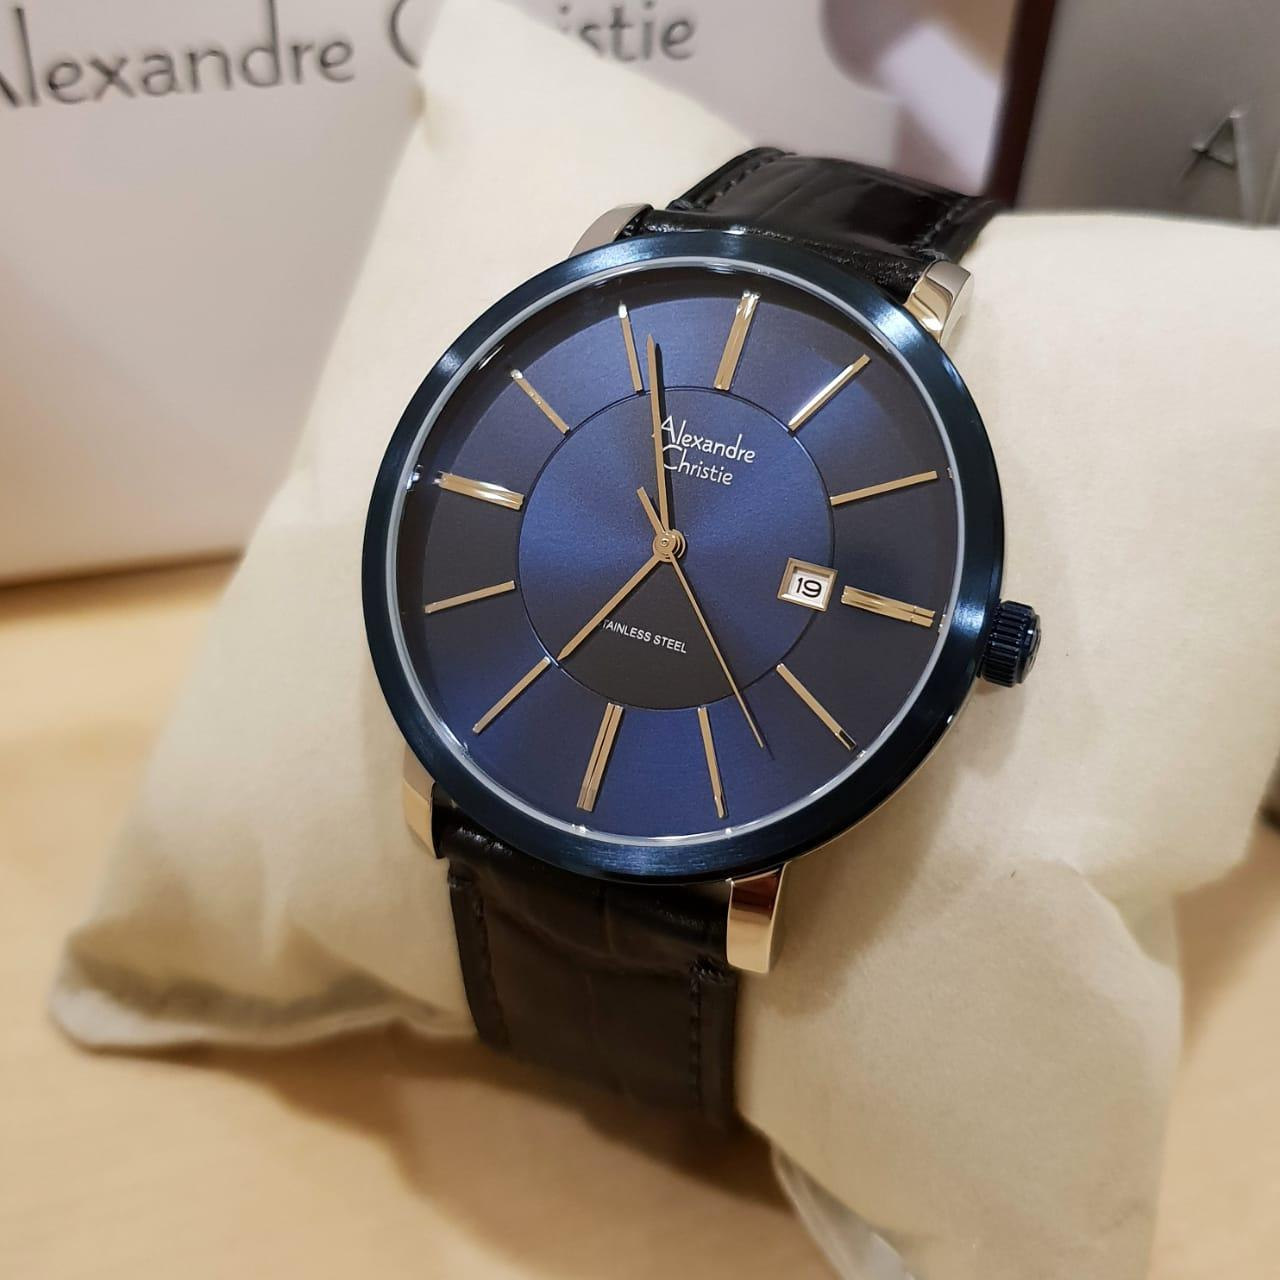 Jam Tangan Alexandre Christie Lazada Ac 6442 Mc Black White Ac8344m Original Pria Stainless Leather Hitam Silver Biru